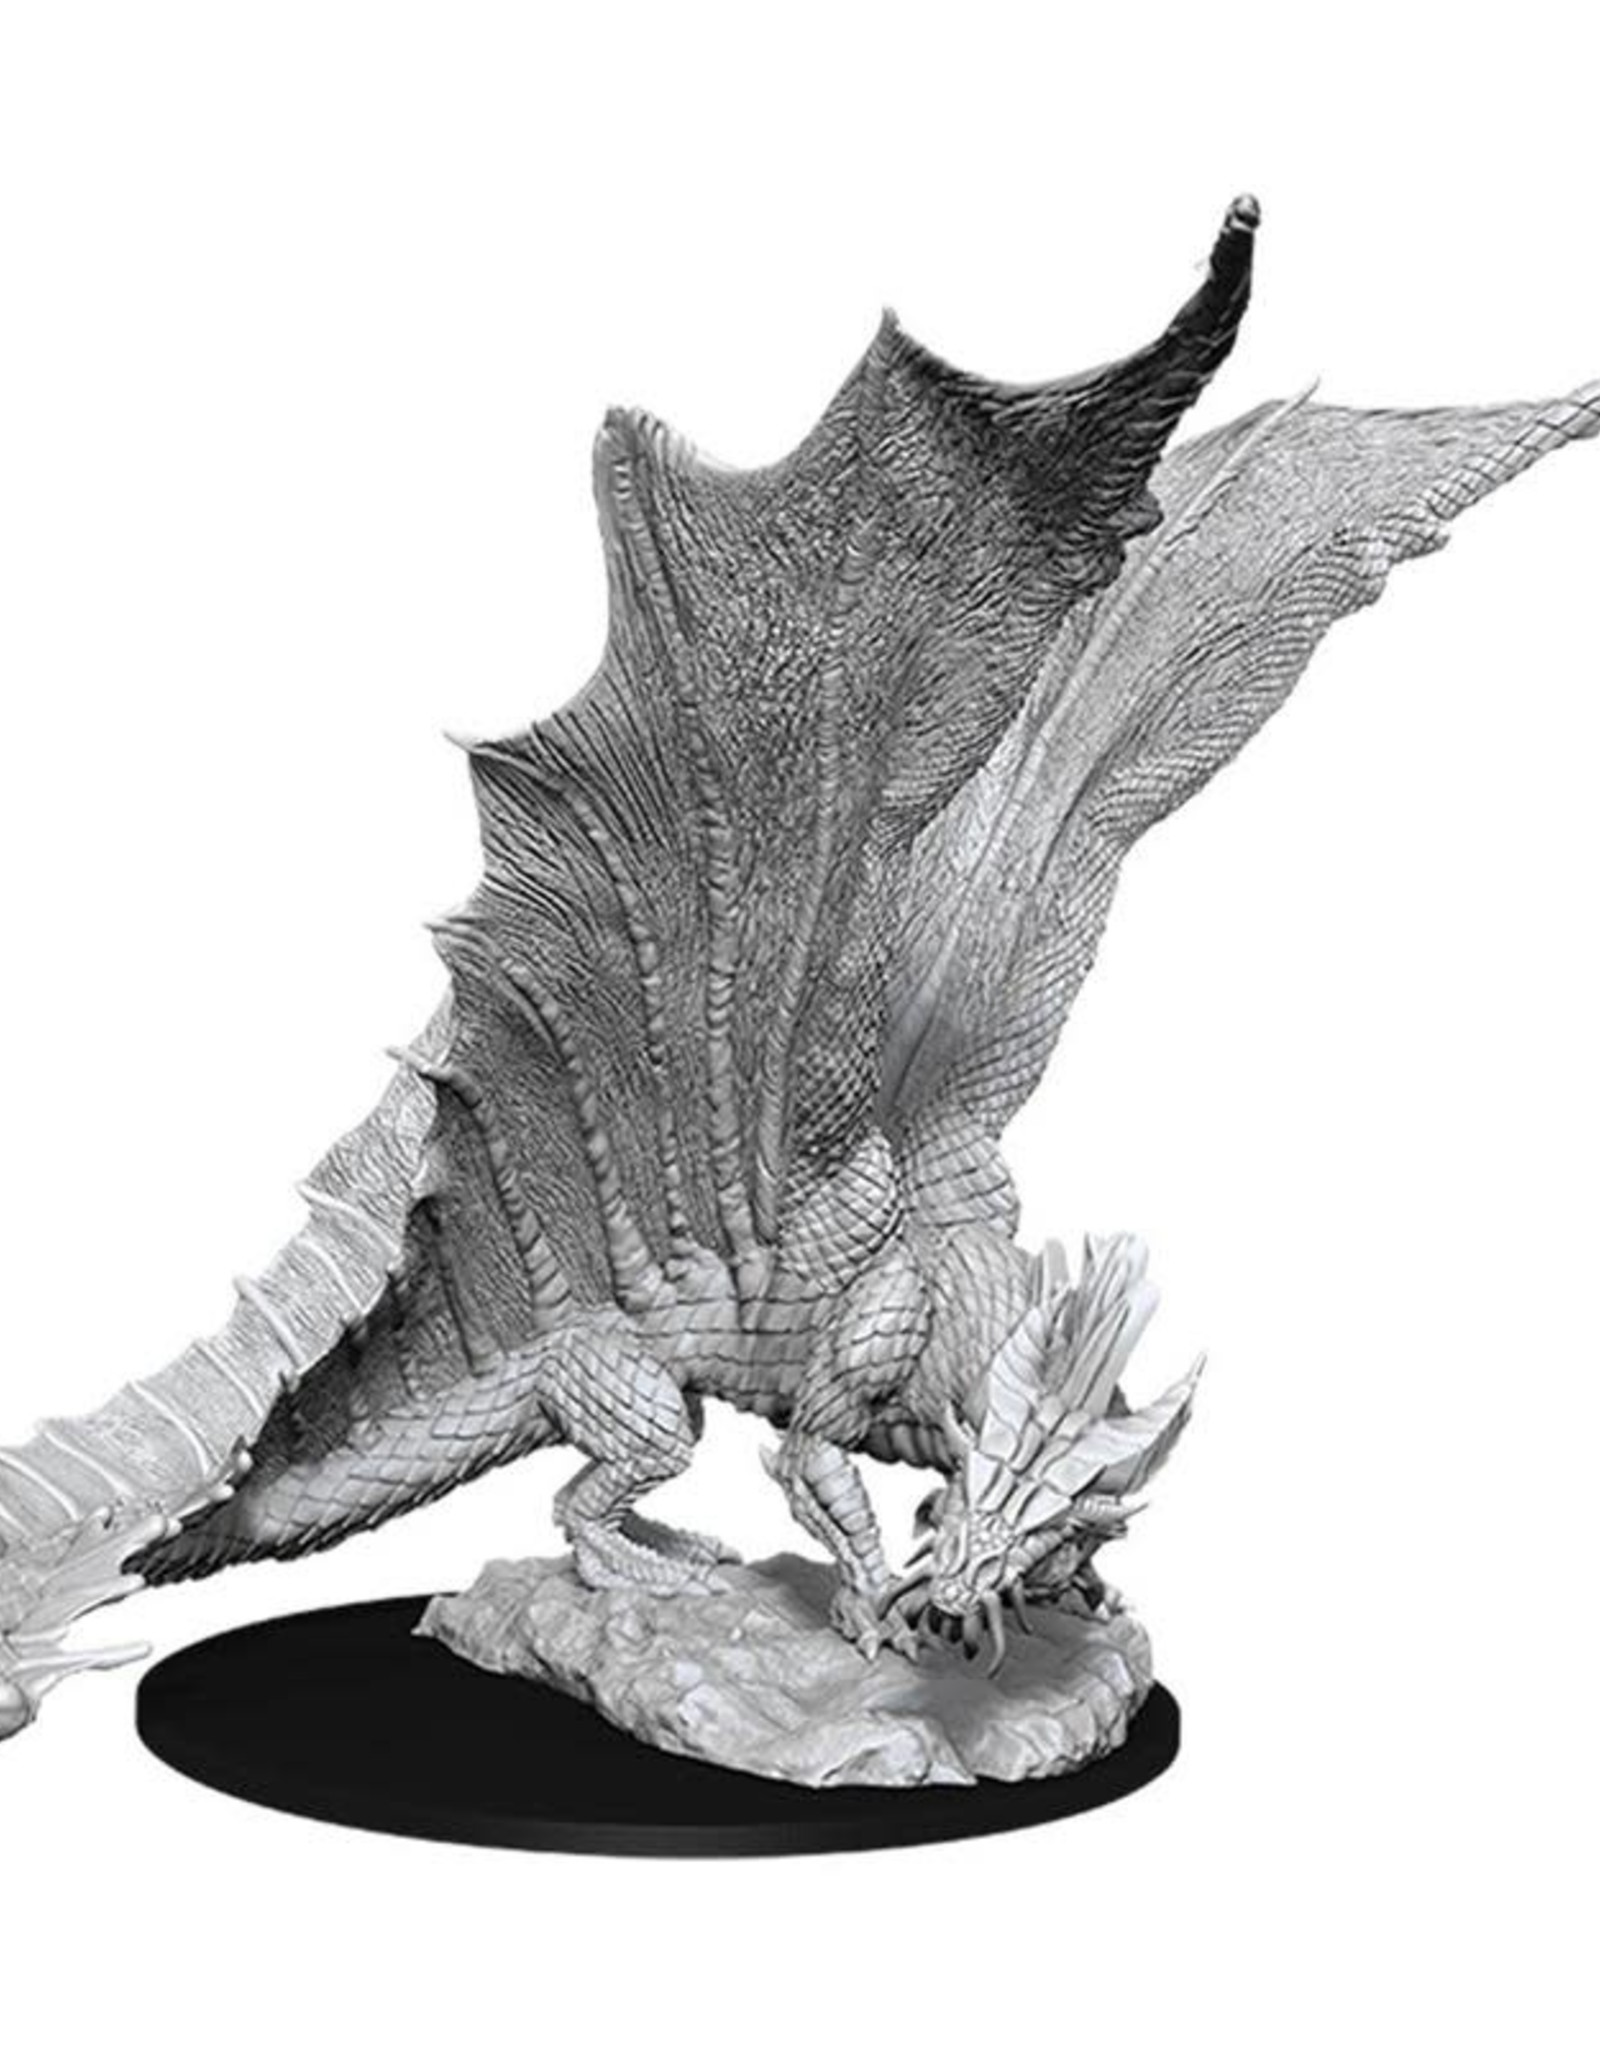 WizKids Dungeons & Dragons Nolzur's Marvelous Miniatures: Young Gold Dragon